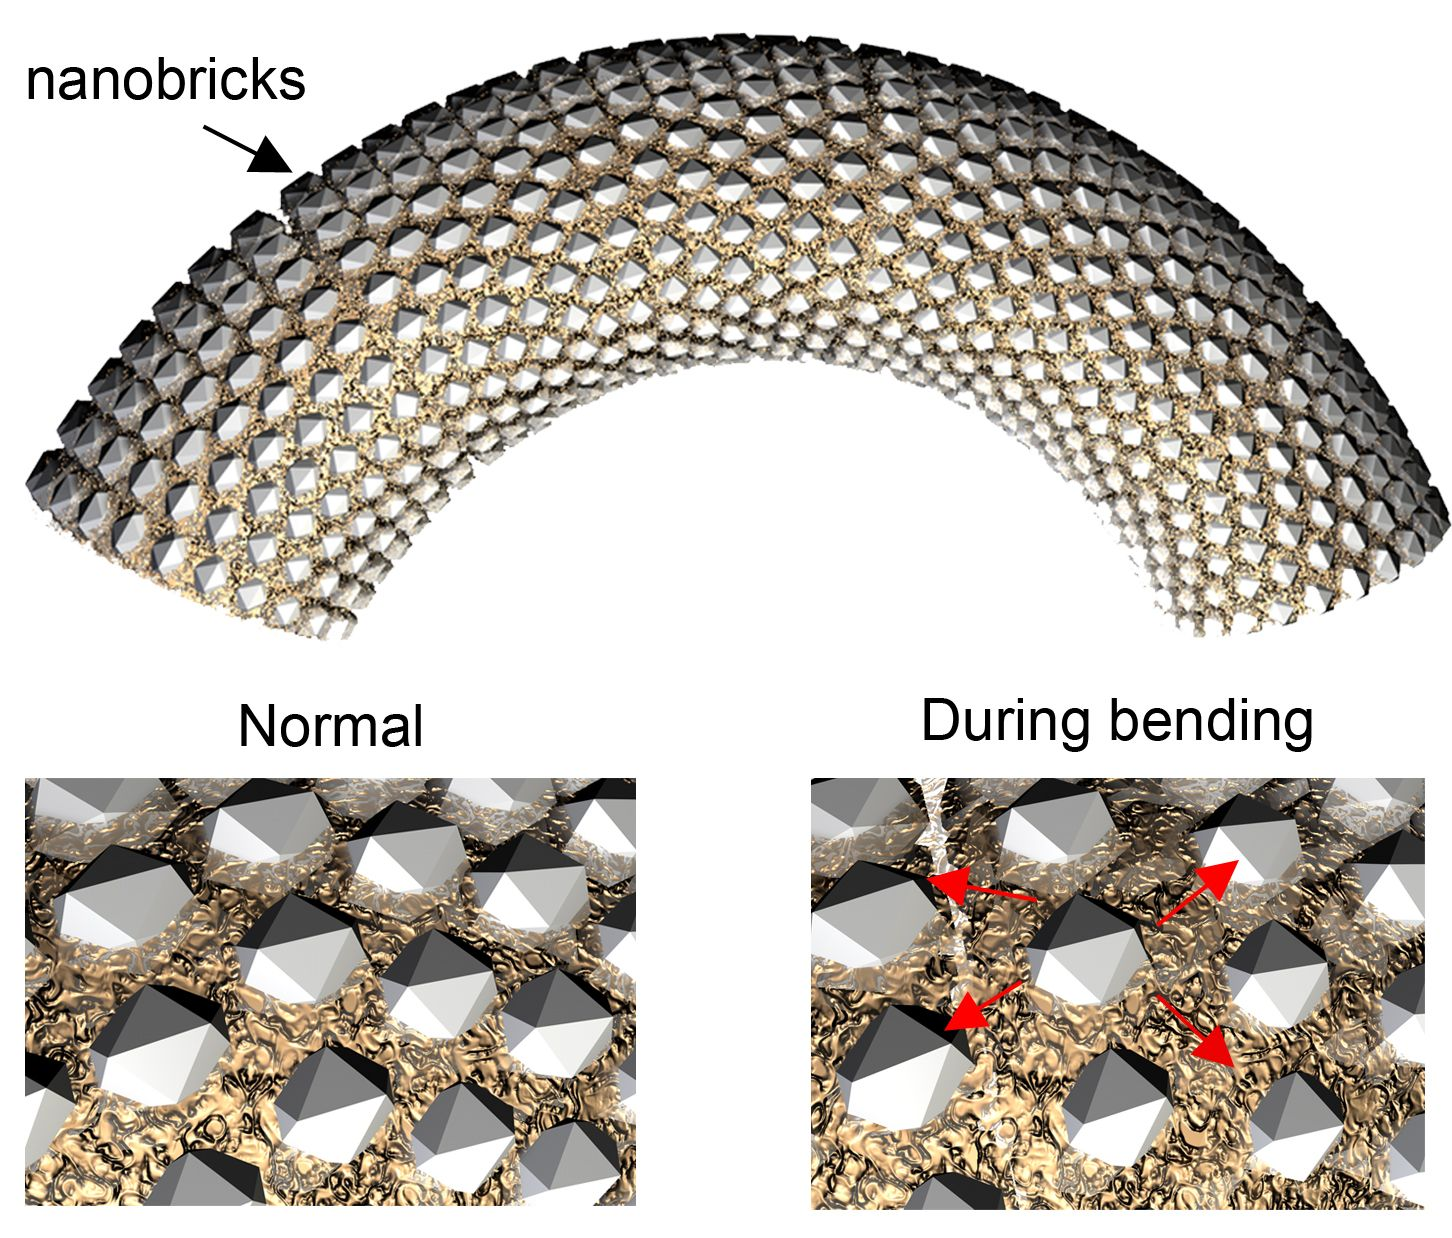 Flexible mineral created by nanobricks inspired by sea for Flexible roofing material